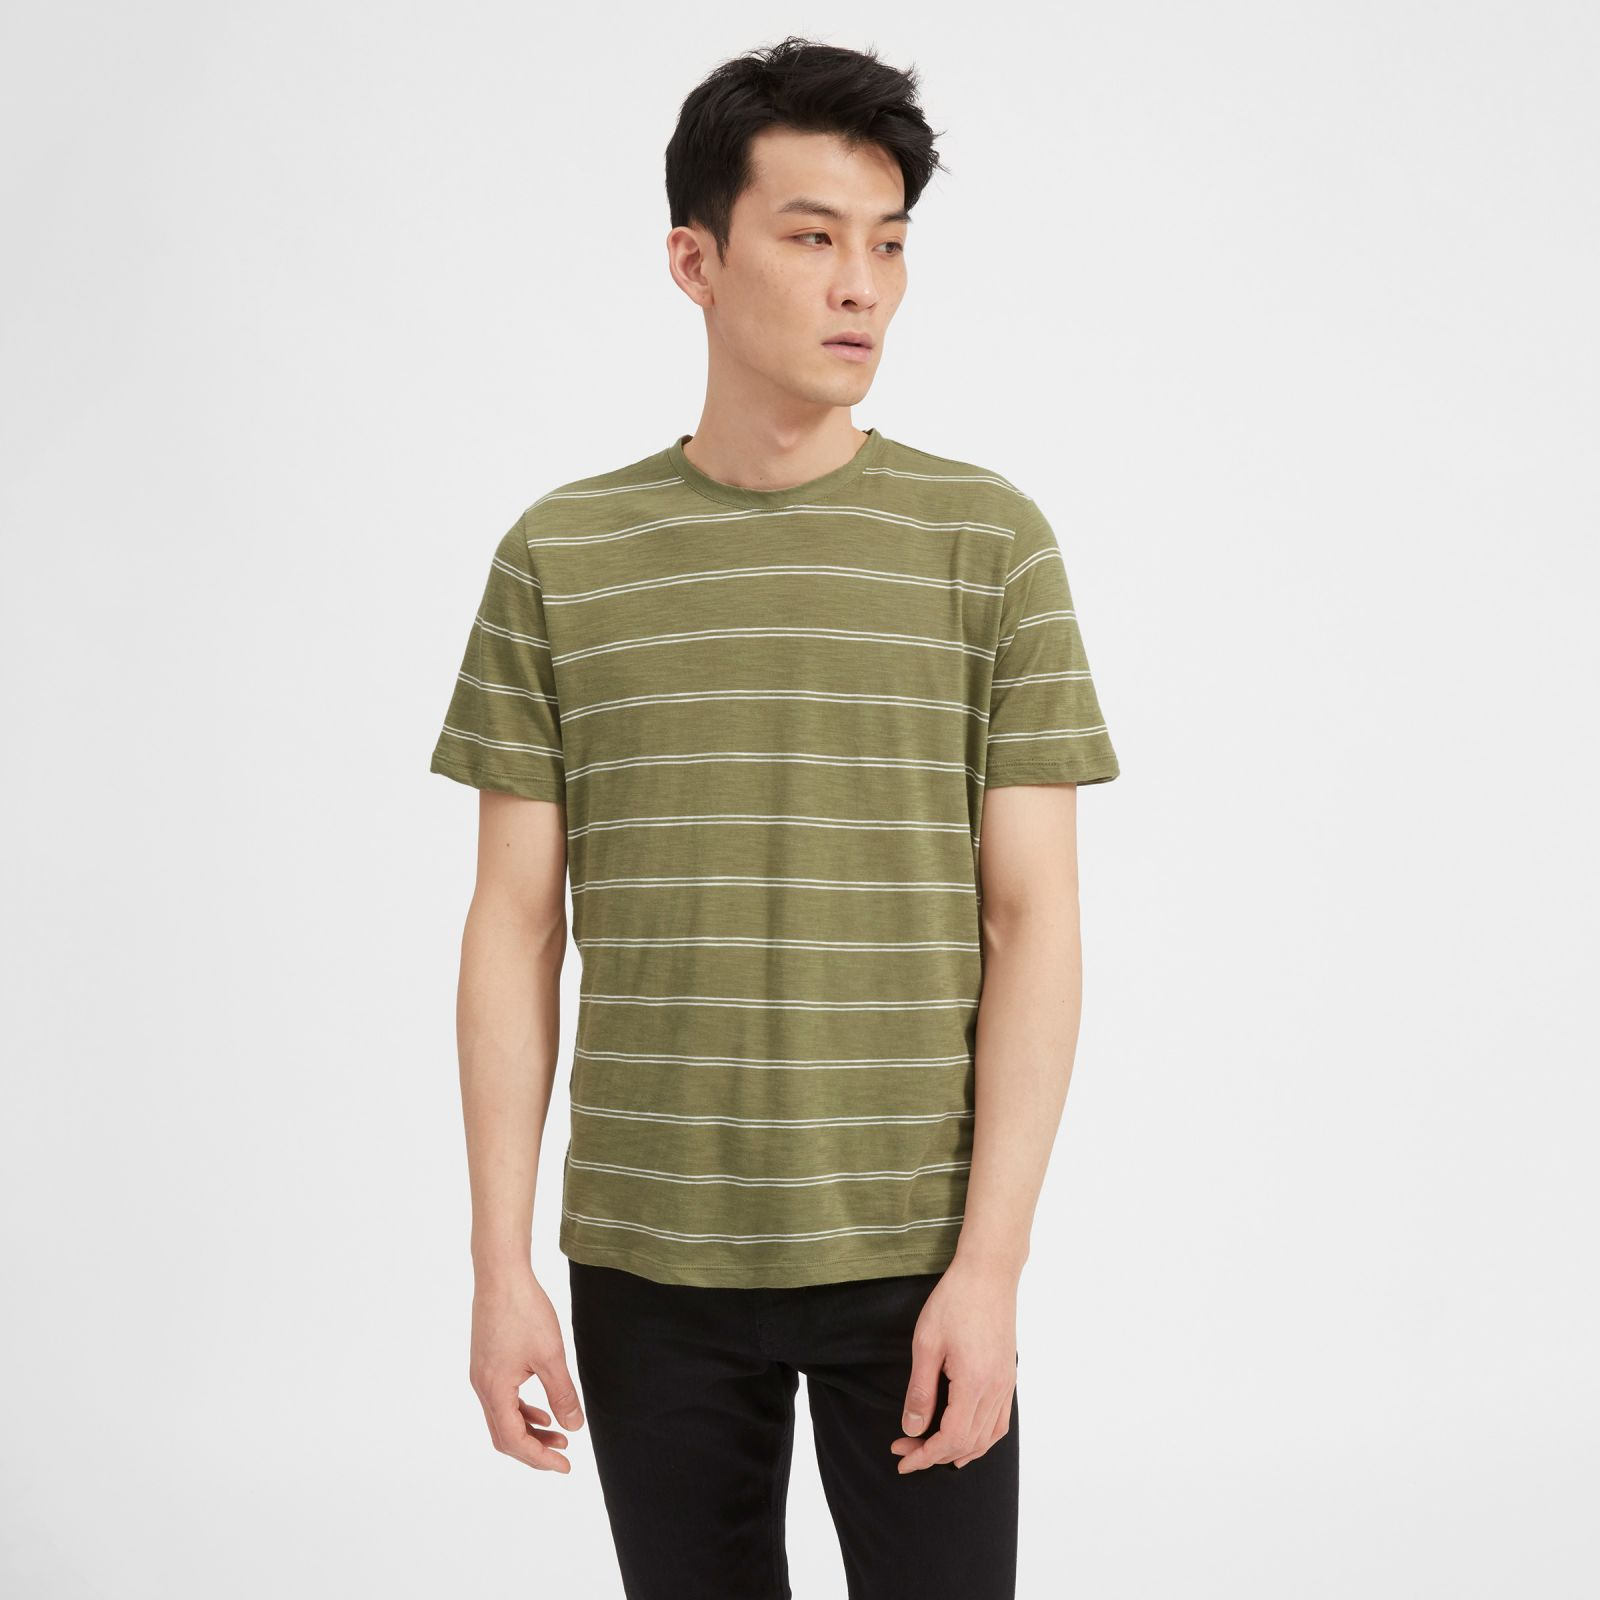 men's air crew t-shirt by everlane in covert green / white double stripe, size xl